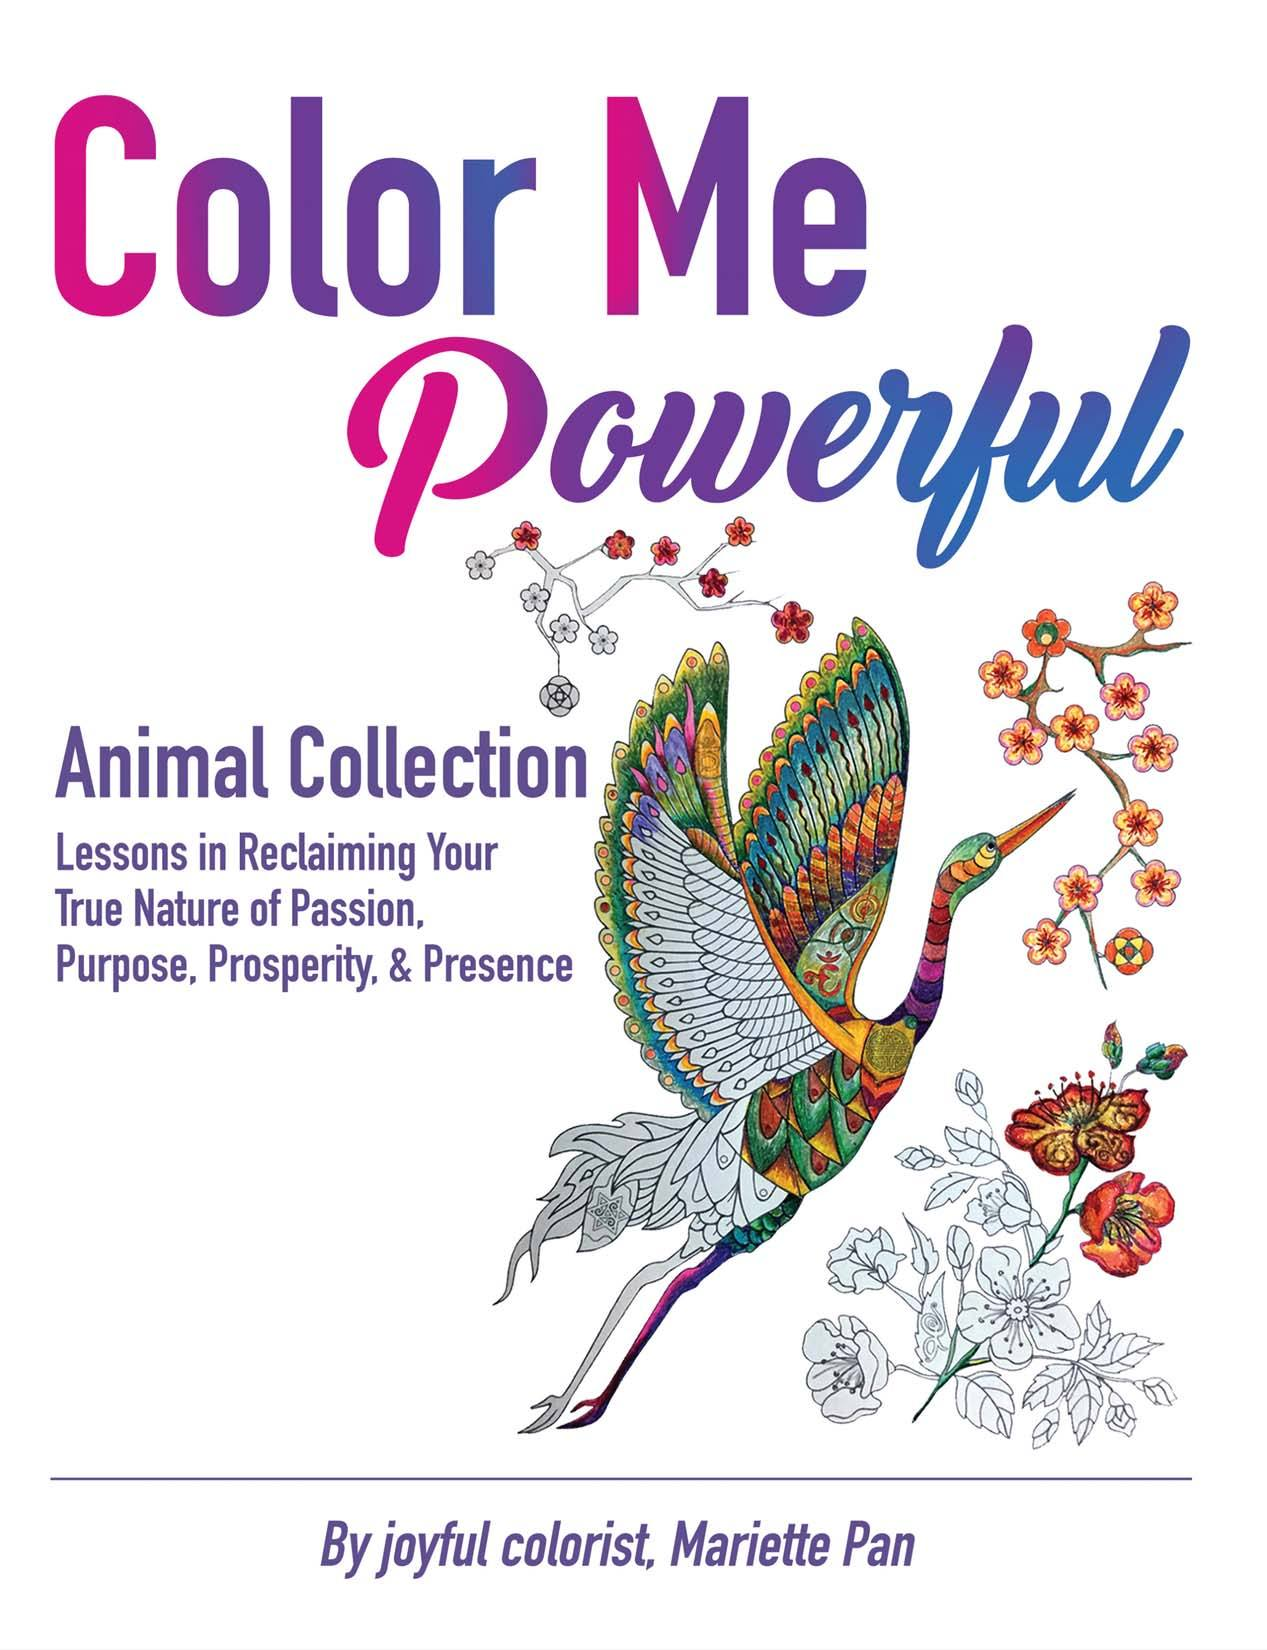 Color Me Powerful Animal Collection features 26 unique and empowering images of incredibly detailed, spirit animals for you to print and color! Each animal includes lessons in various facets of your I Am soul essence.